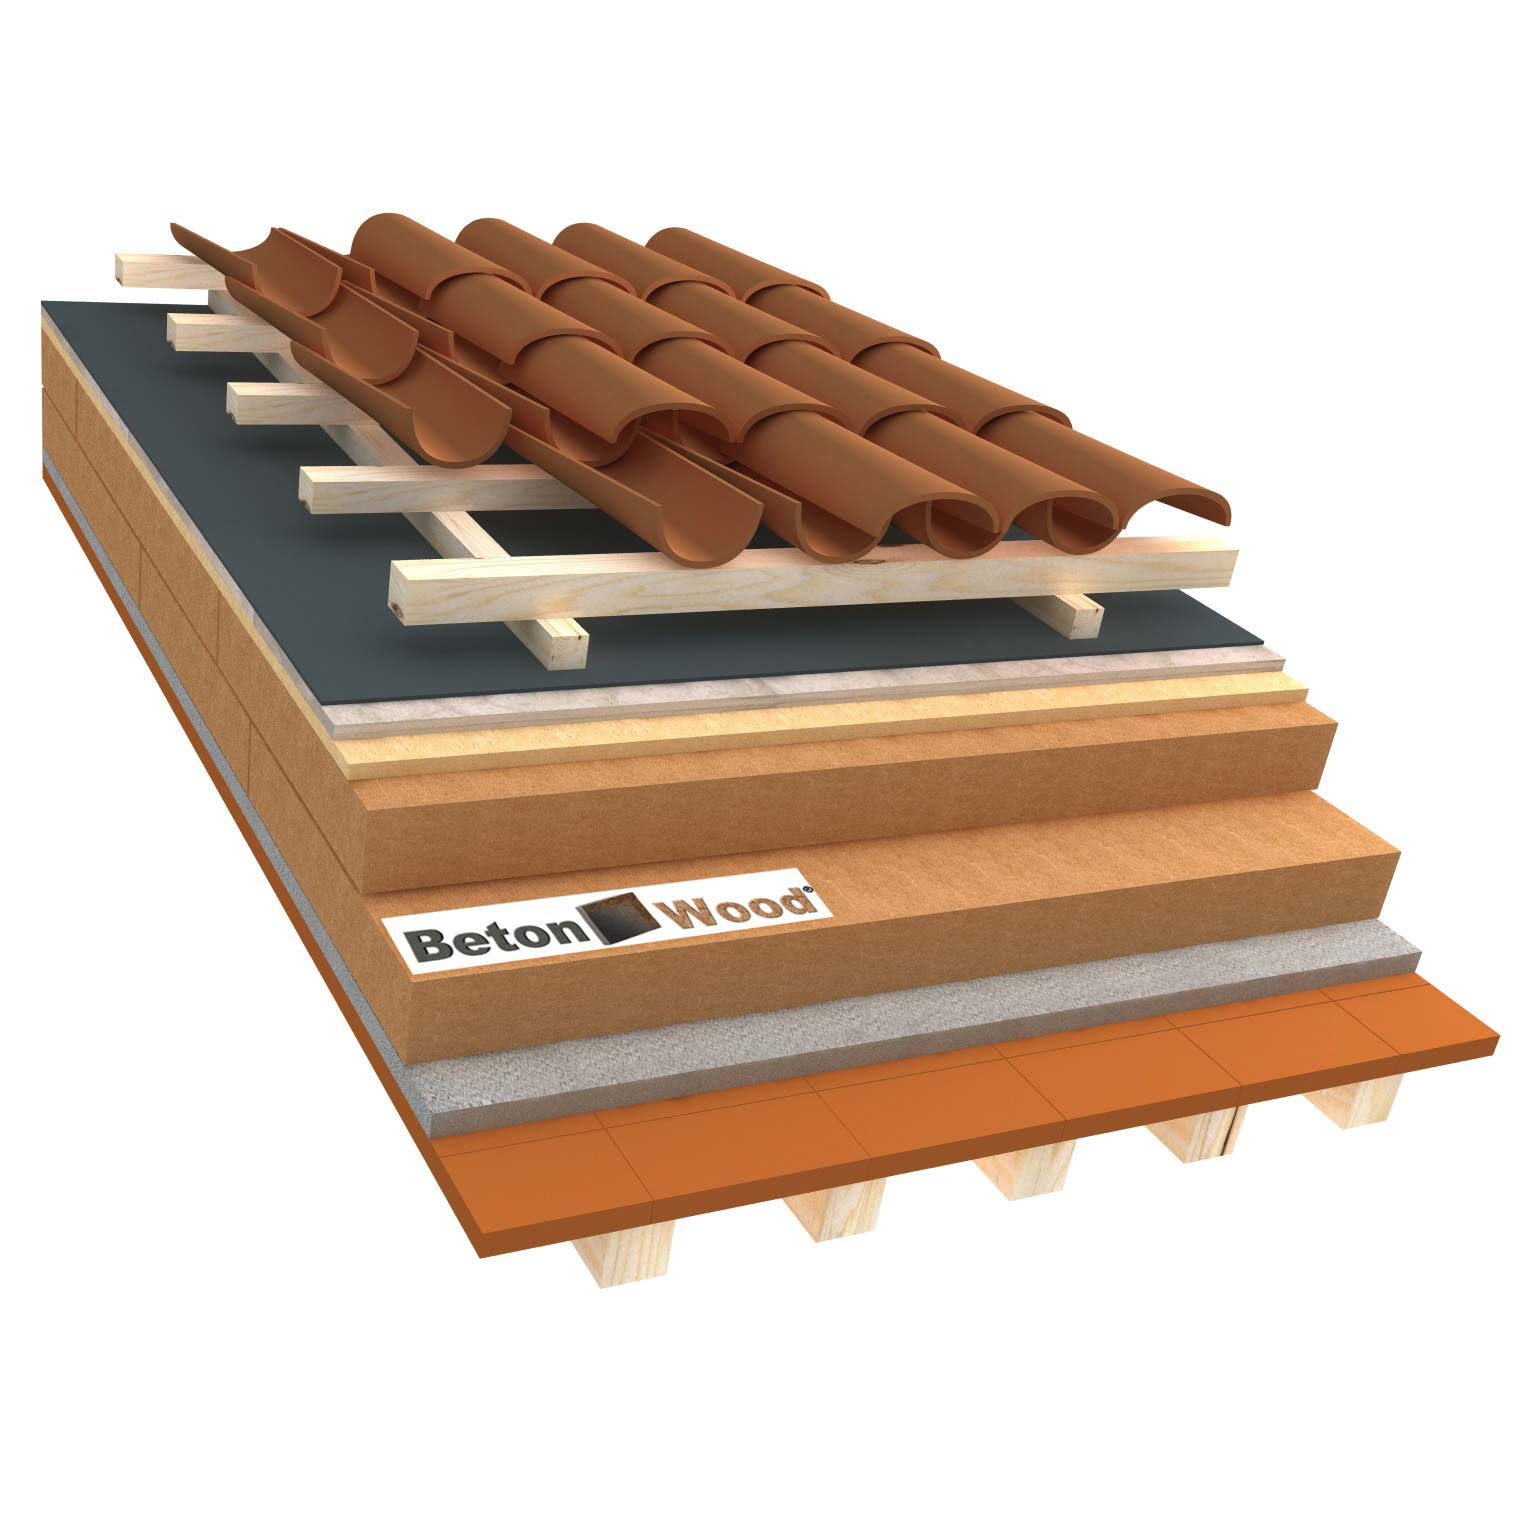 Ventilated roof with fiber wood Isorel, Special and cement bonded particle boards on terracotta tiles